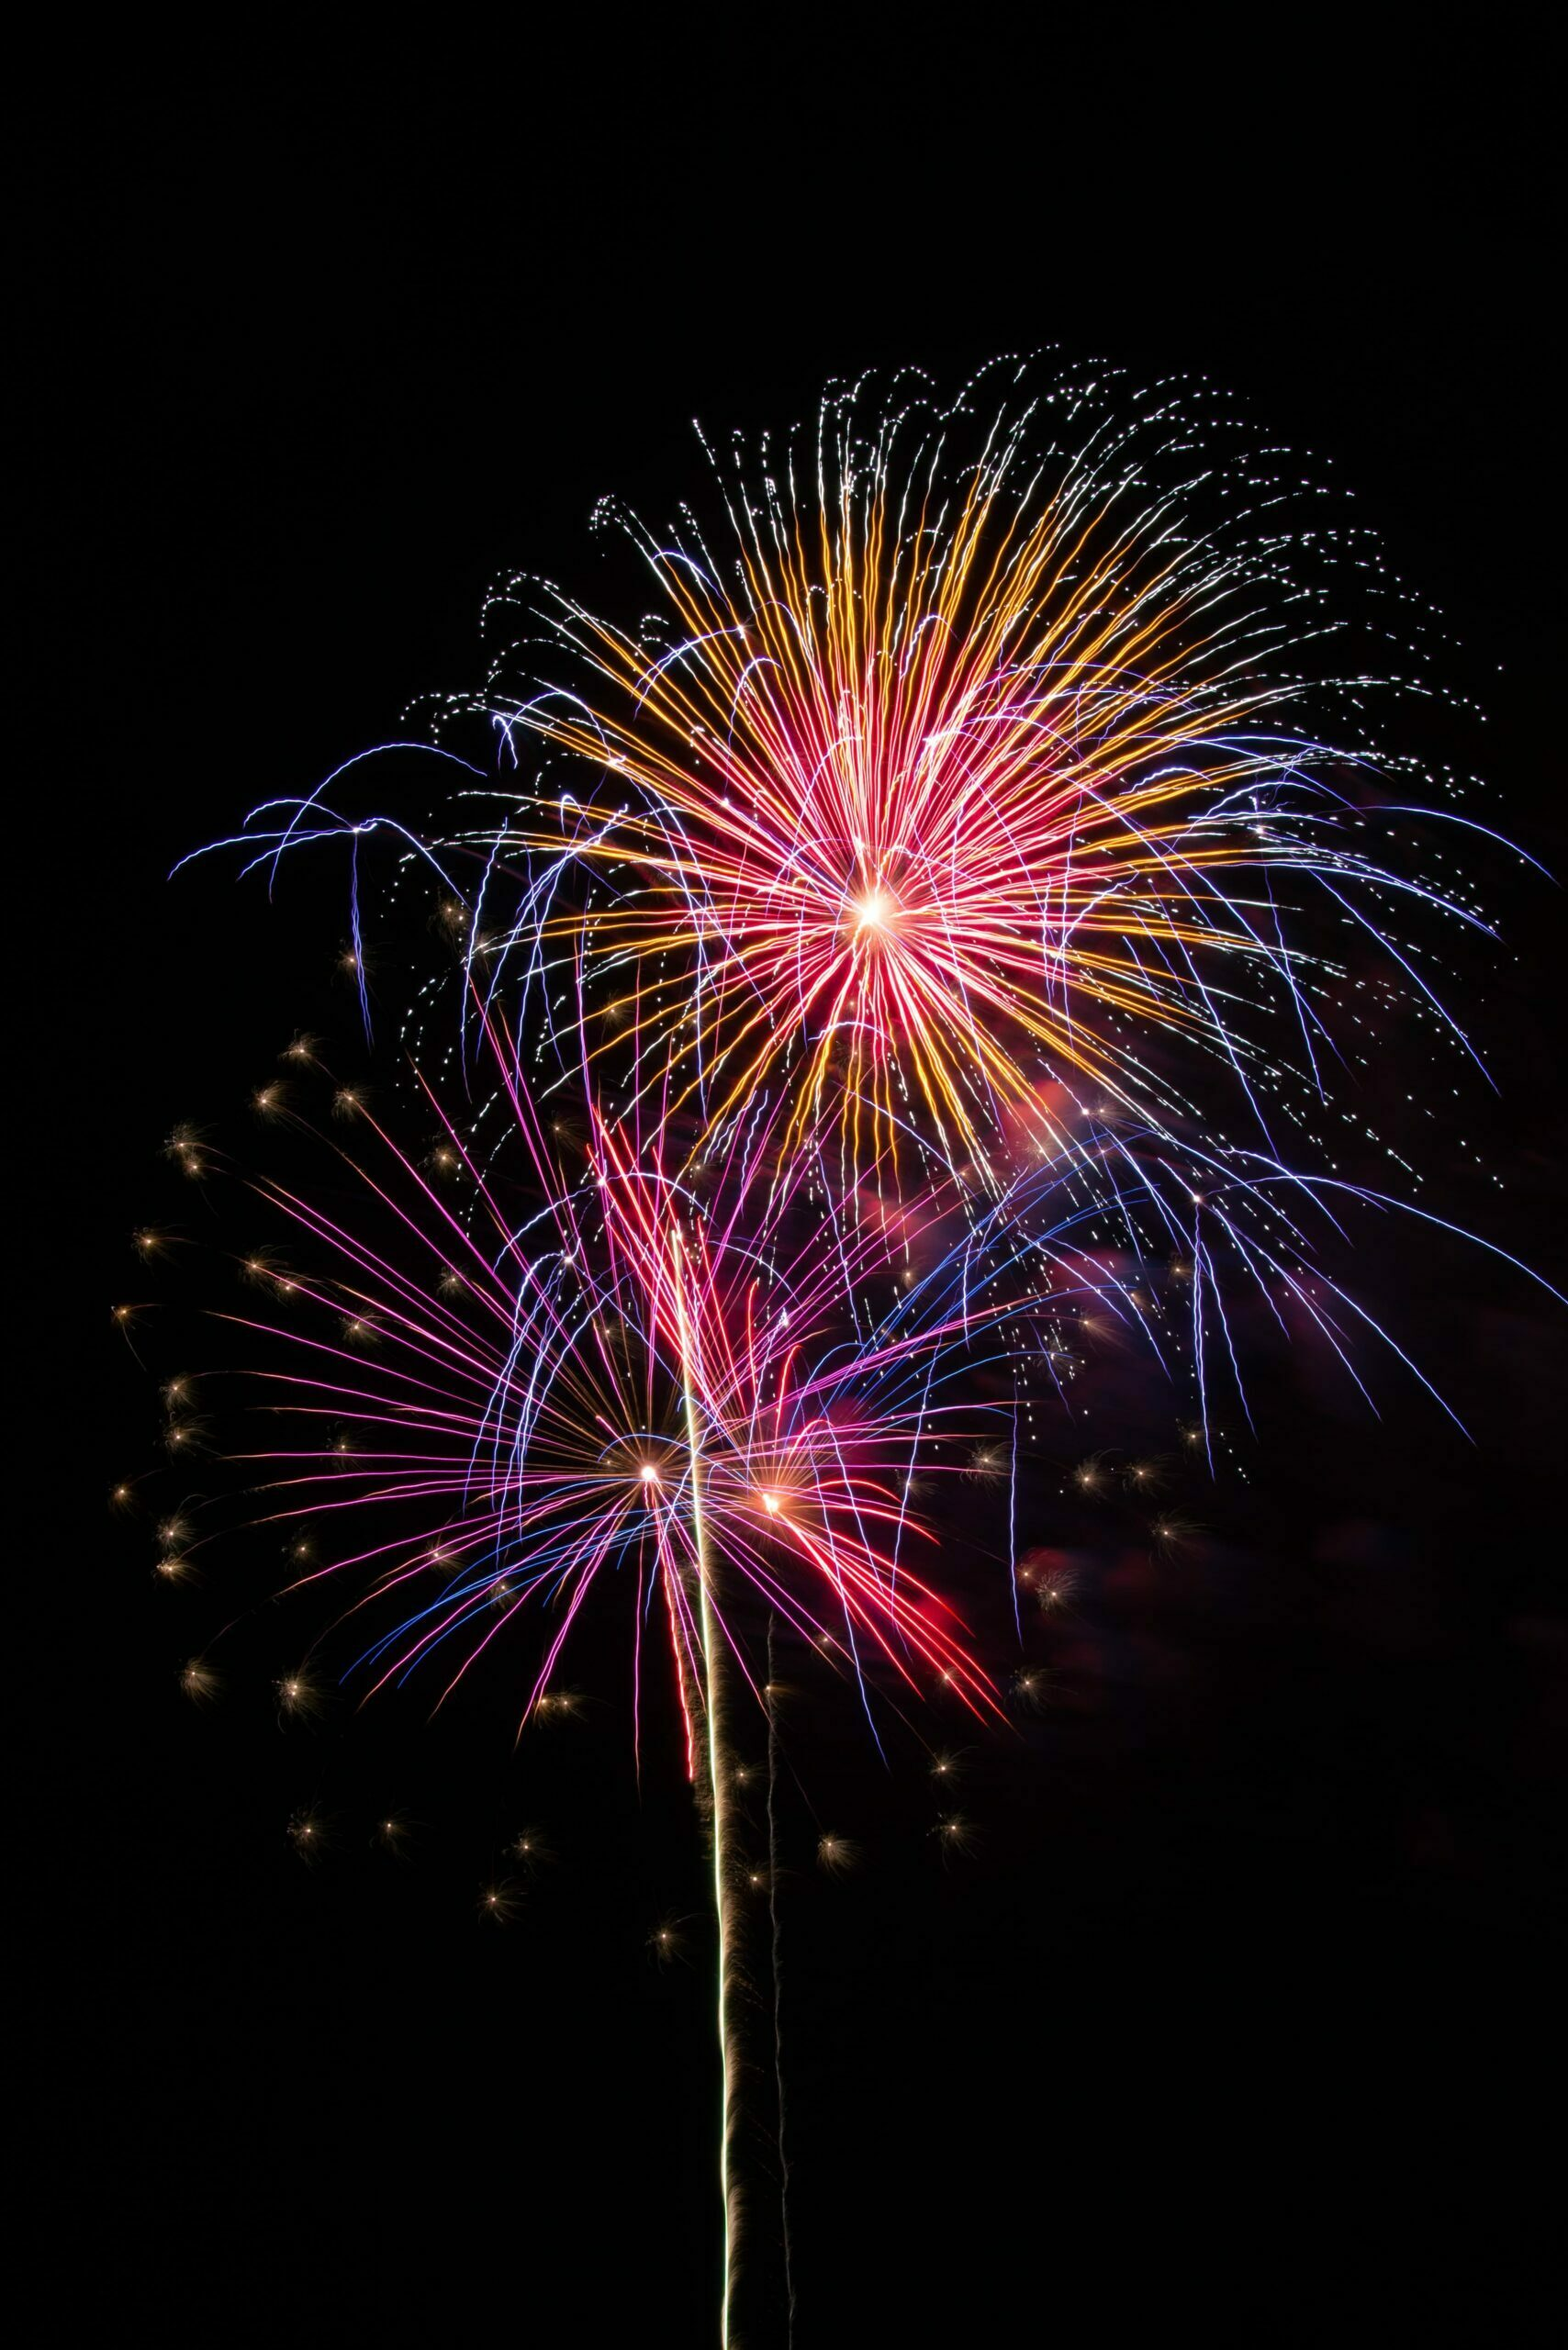 Fireworks on Home page